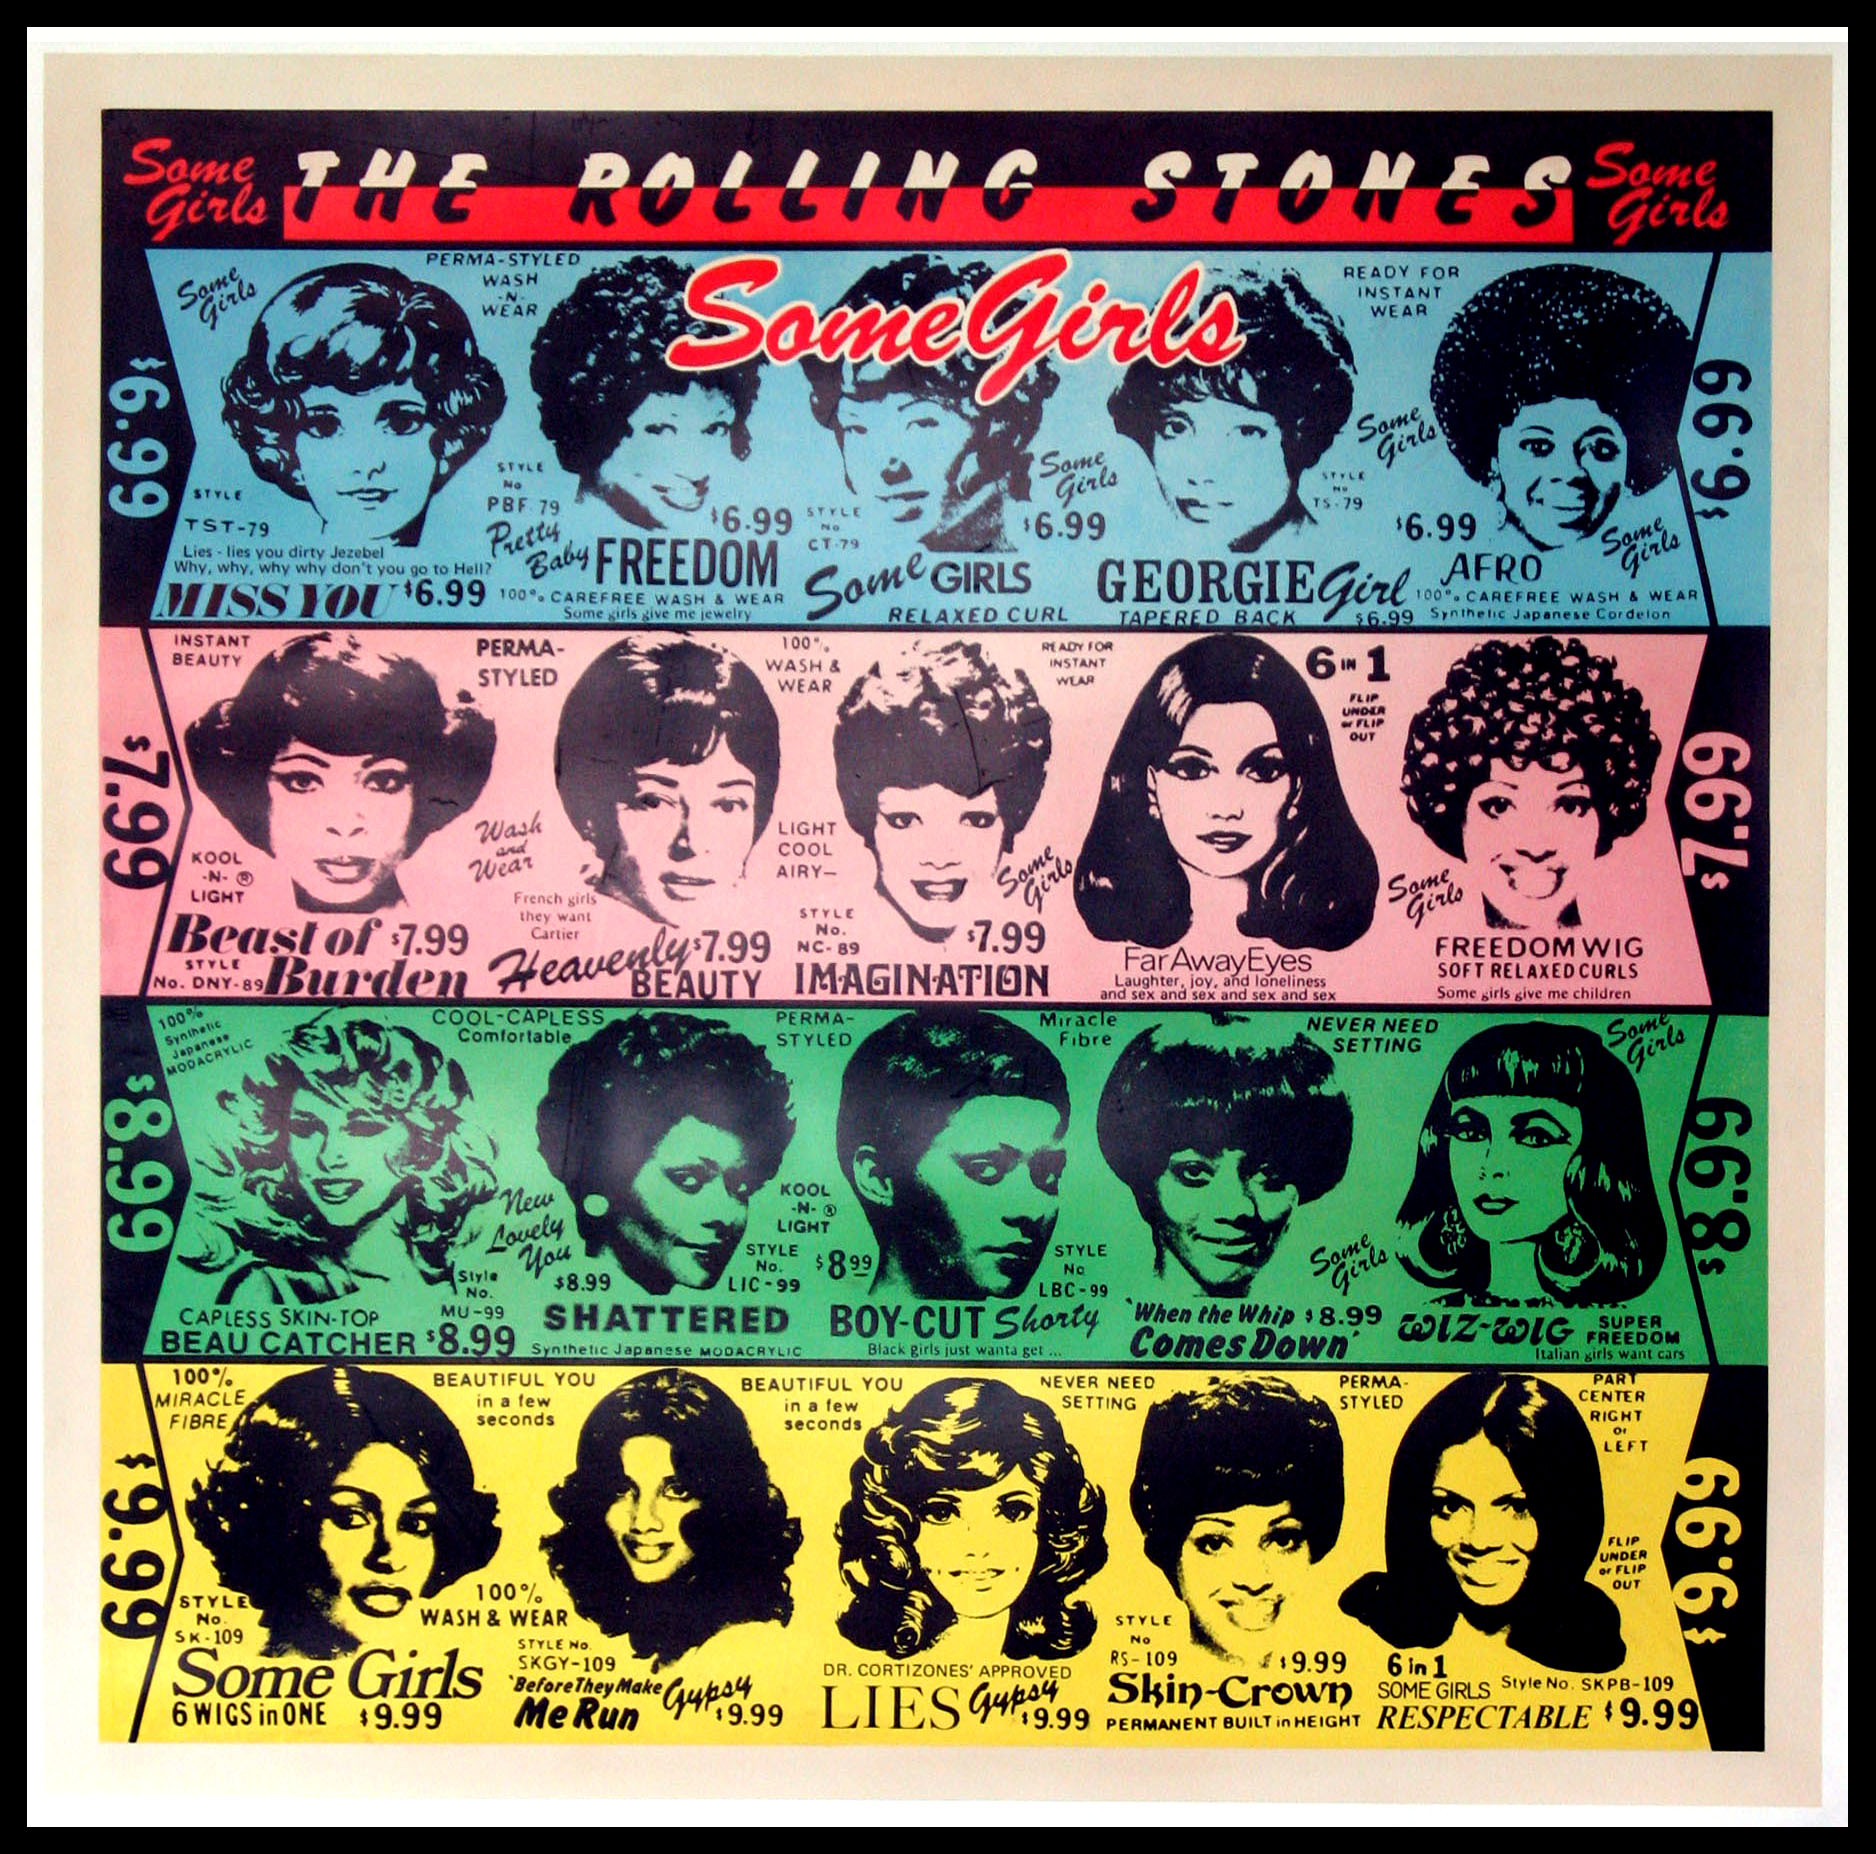 ROLLING STONES SOME GIRLS PROMOTIONAL POSTER @ FilmPosters.com